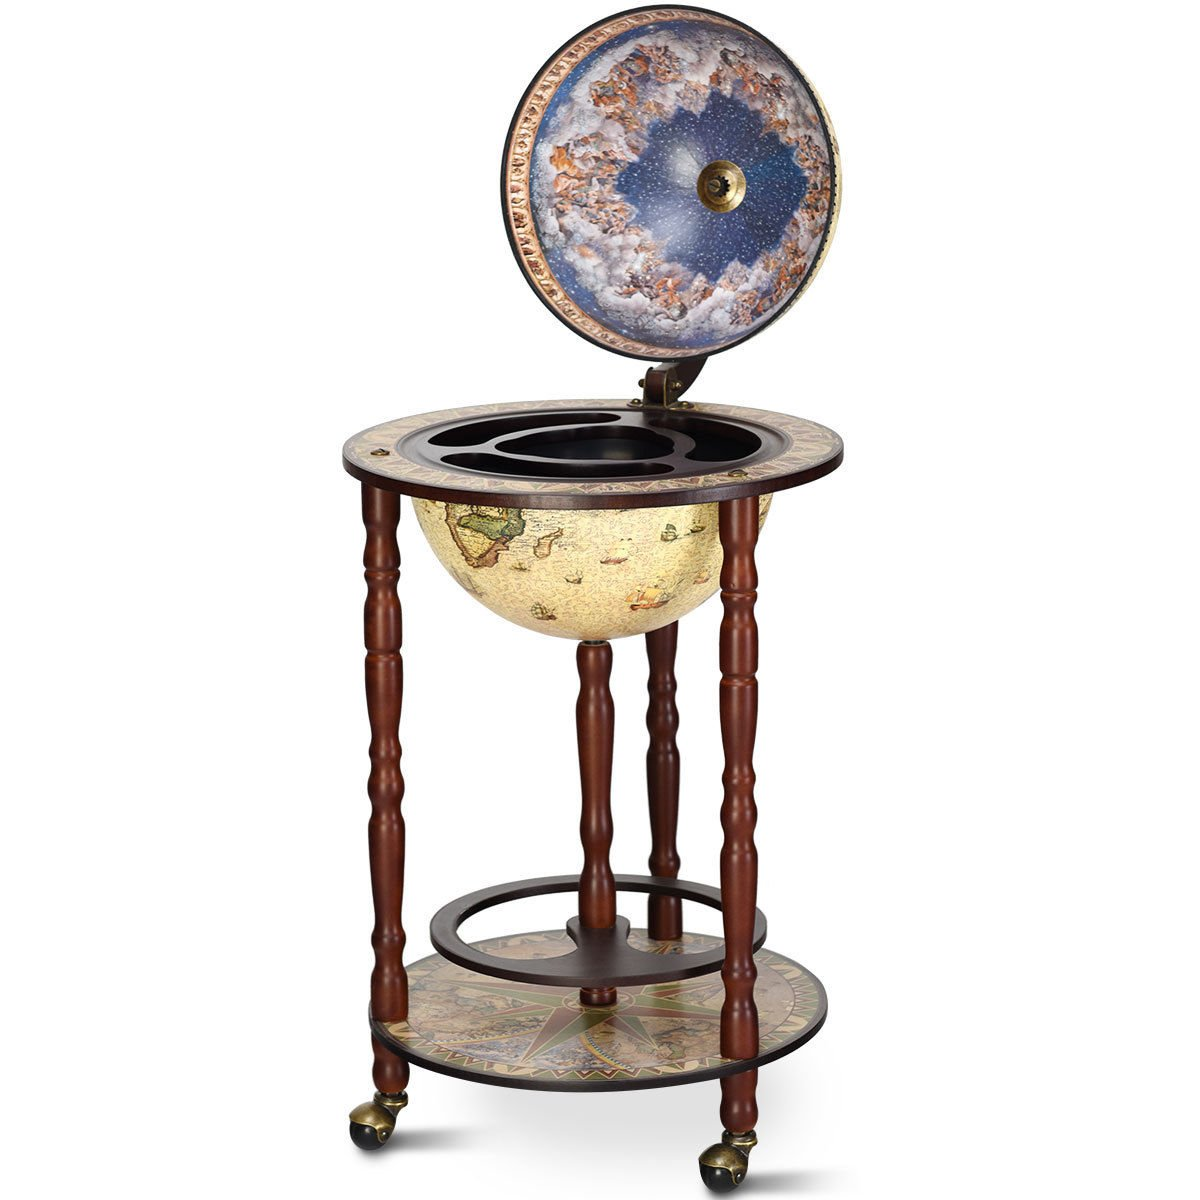 16th Century Antique Italian-Style Globe Wooden Construction Wine Rack Wine Bar Stand Holder Liquor Bottle Glass Shelf Cart 3 Wheels For Easy Movement Home Bar Kitchen Dining Room Living Room Decor by Almacén